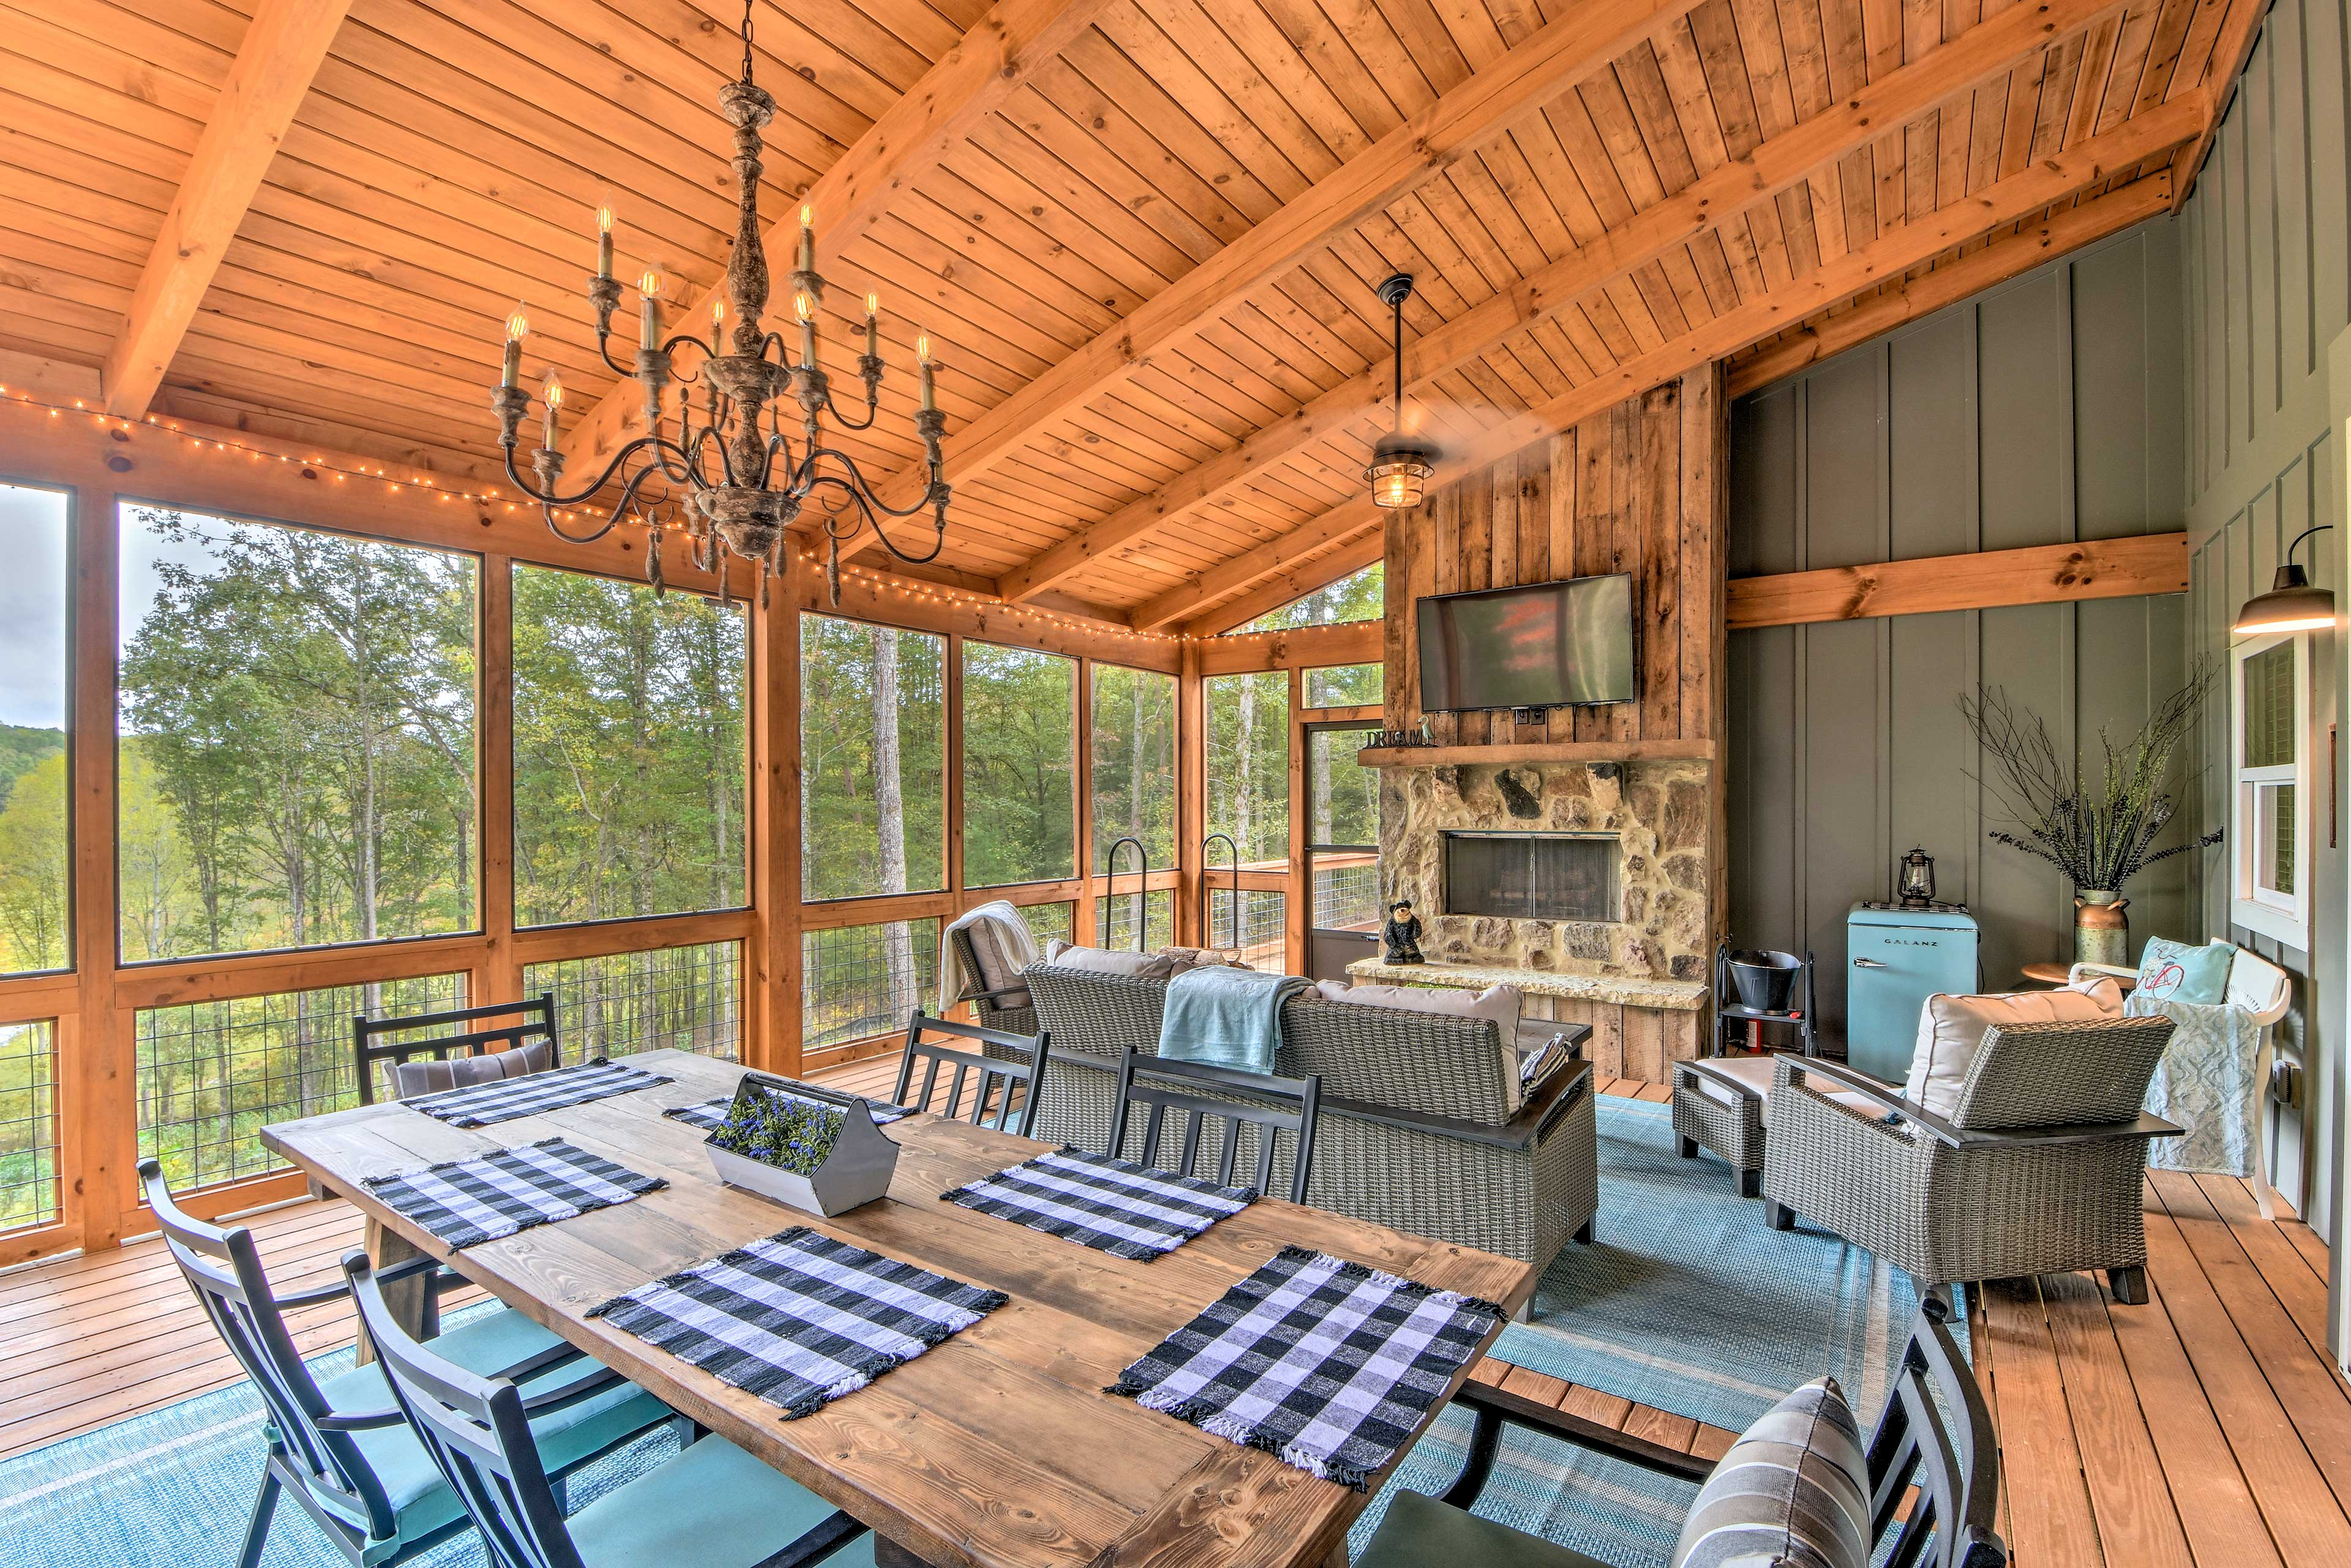 Make memories that'll last a lifetime when you stay at this vacation rental!